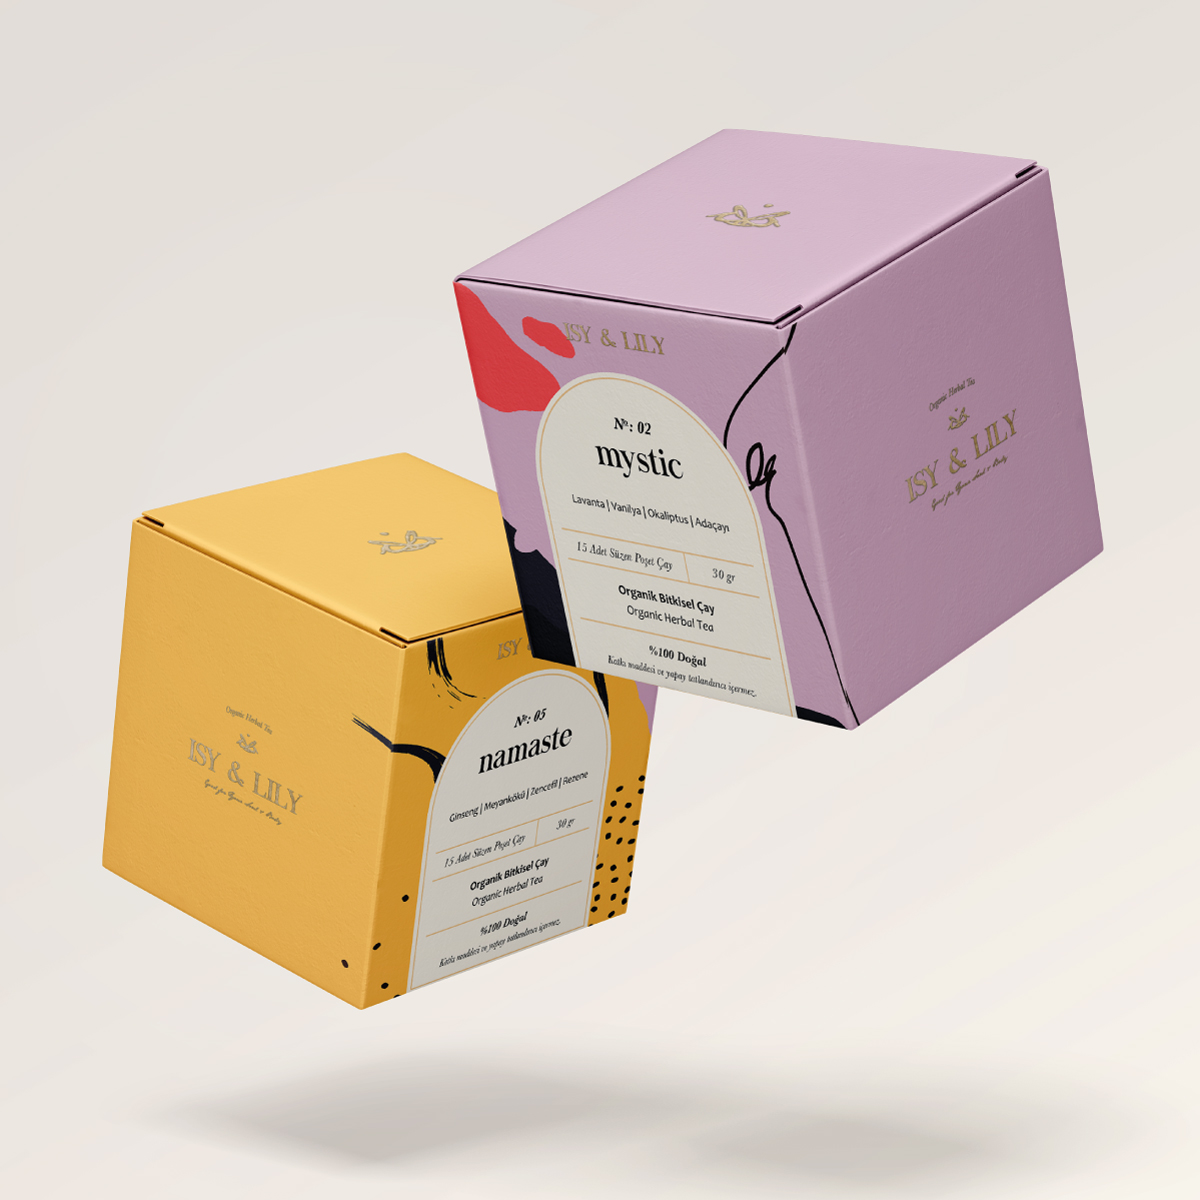 Packaging Design Concept for Isy & Lily Tea by White Studio Istanbul